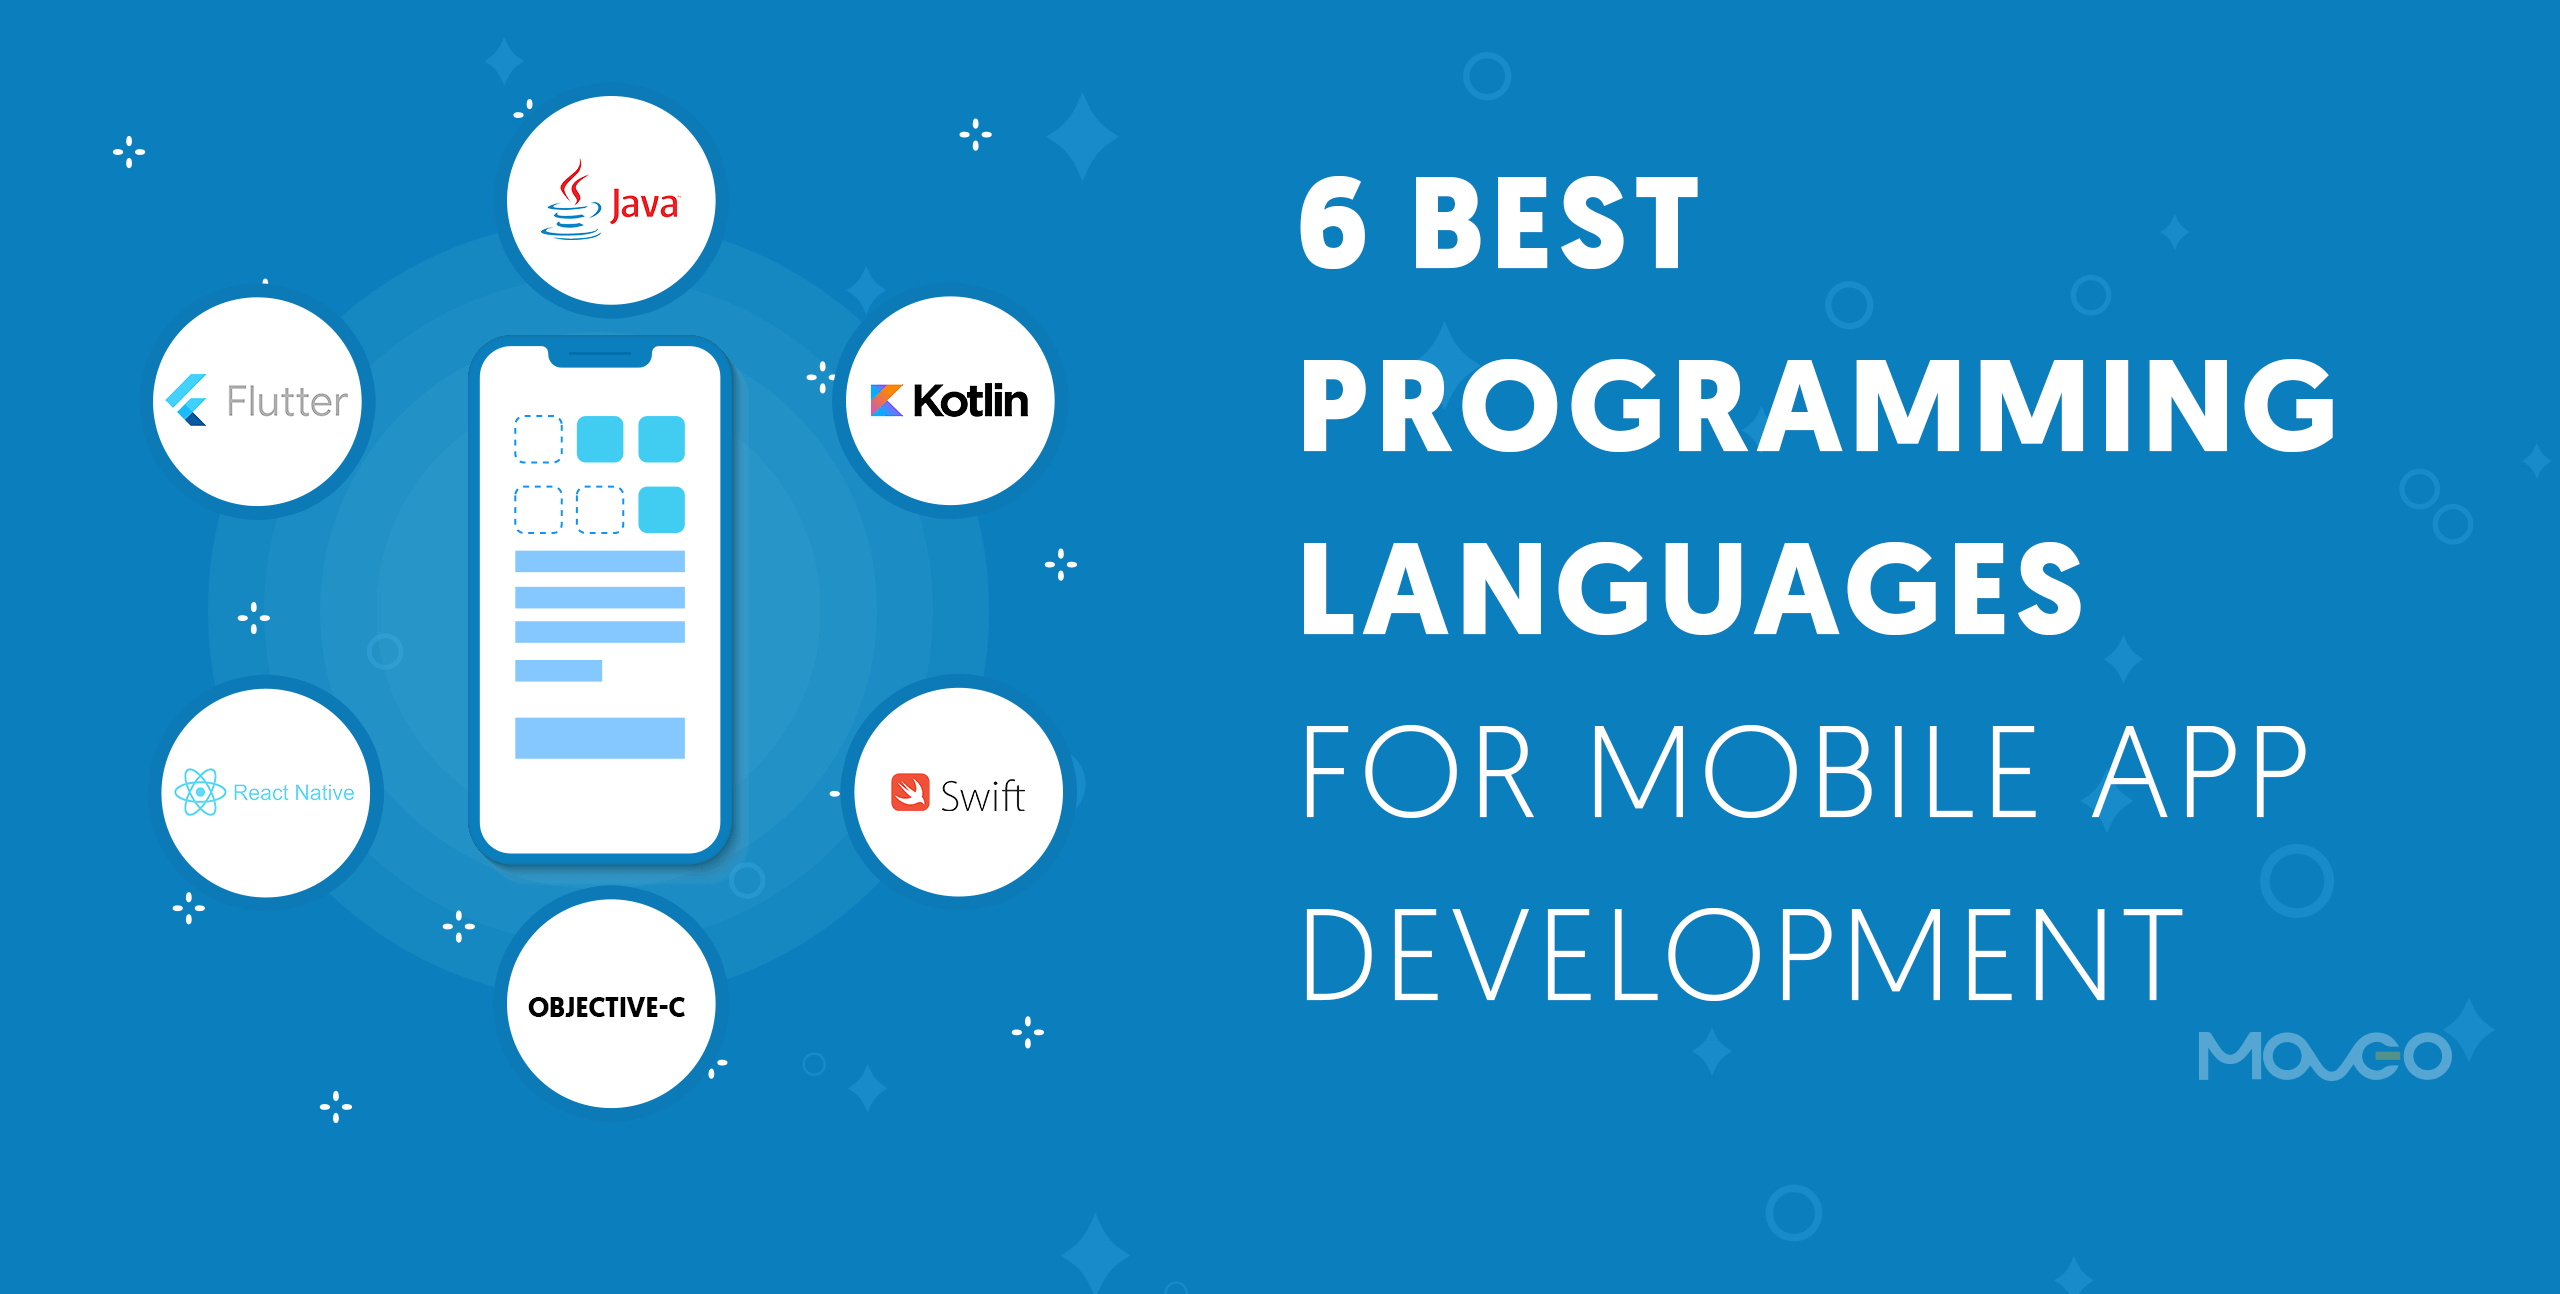 6 Best Programming Languages for Mobile App Development (2020)